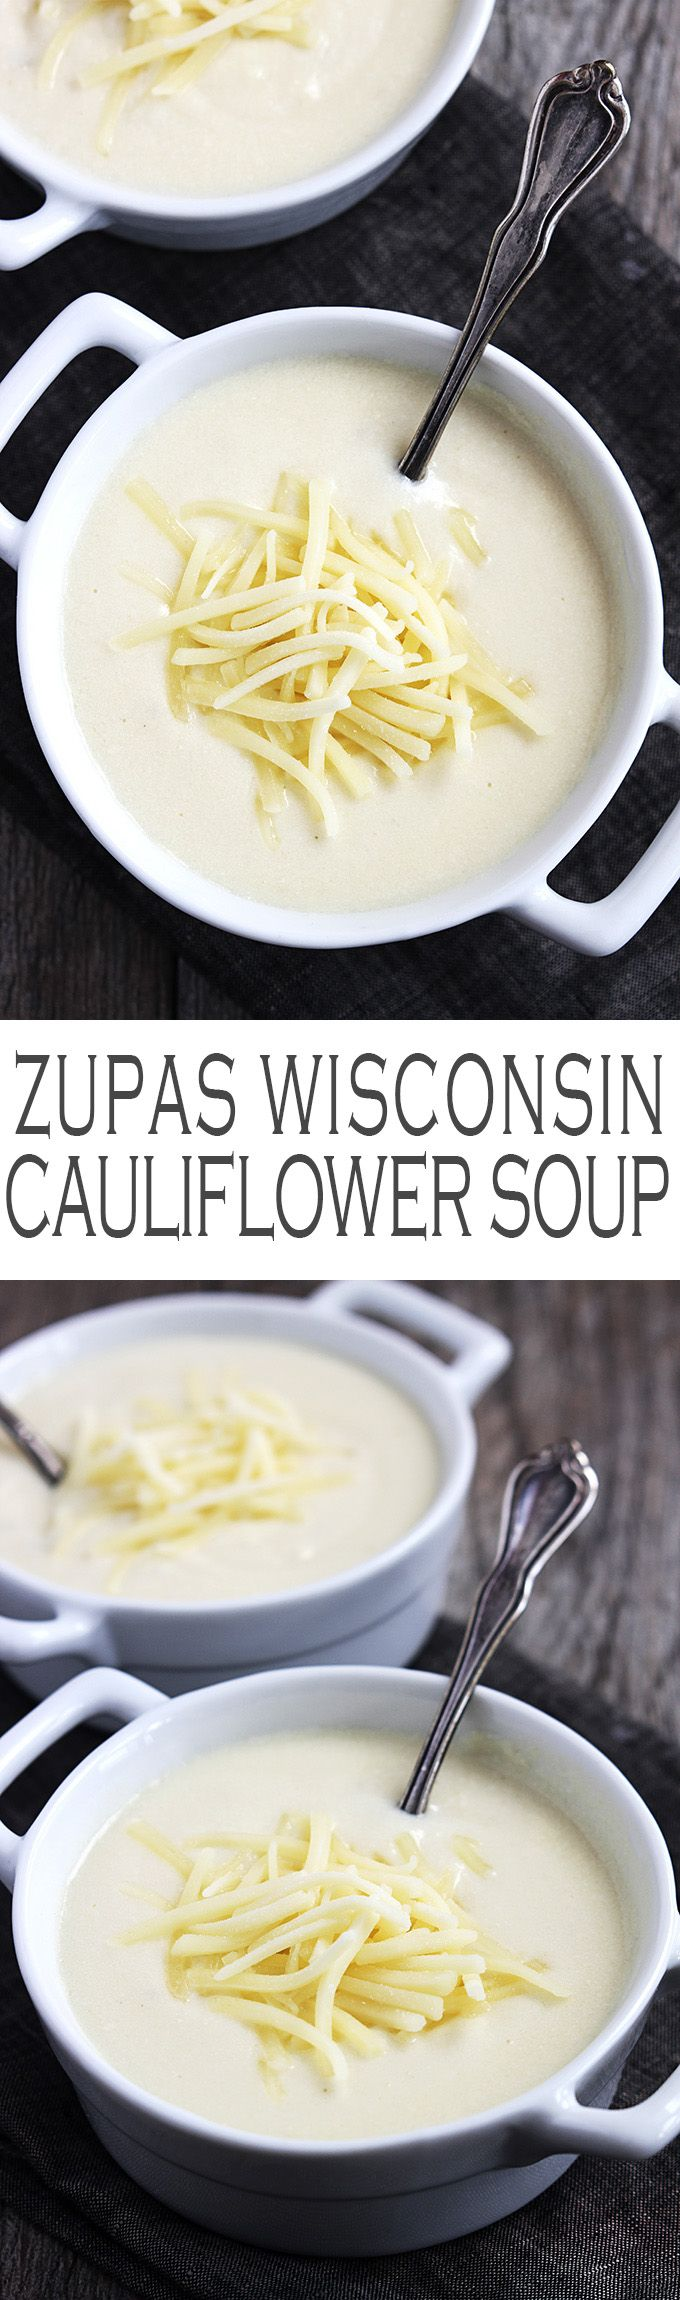 I cant believe that my favorite soup from Zupas is so easy to make at home in less than 30 minutes. This stuff tastes so close to